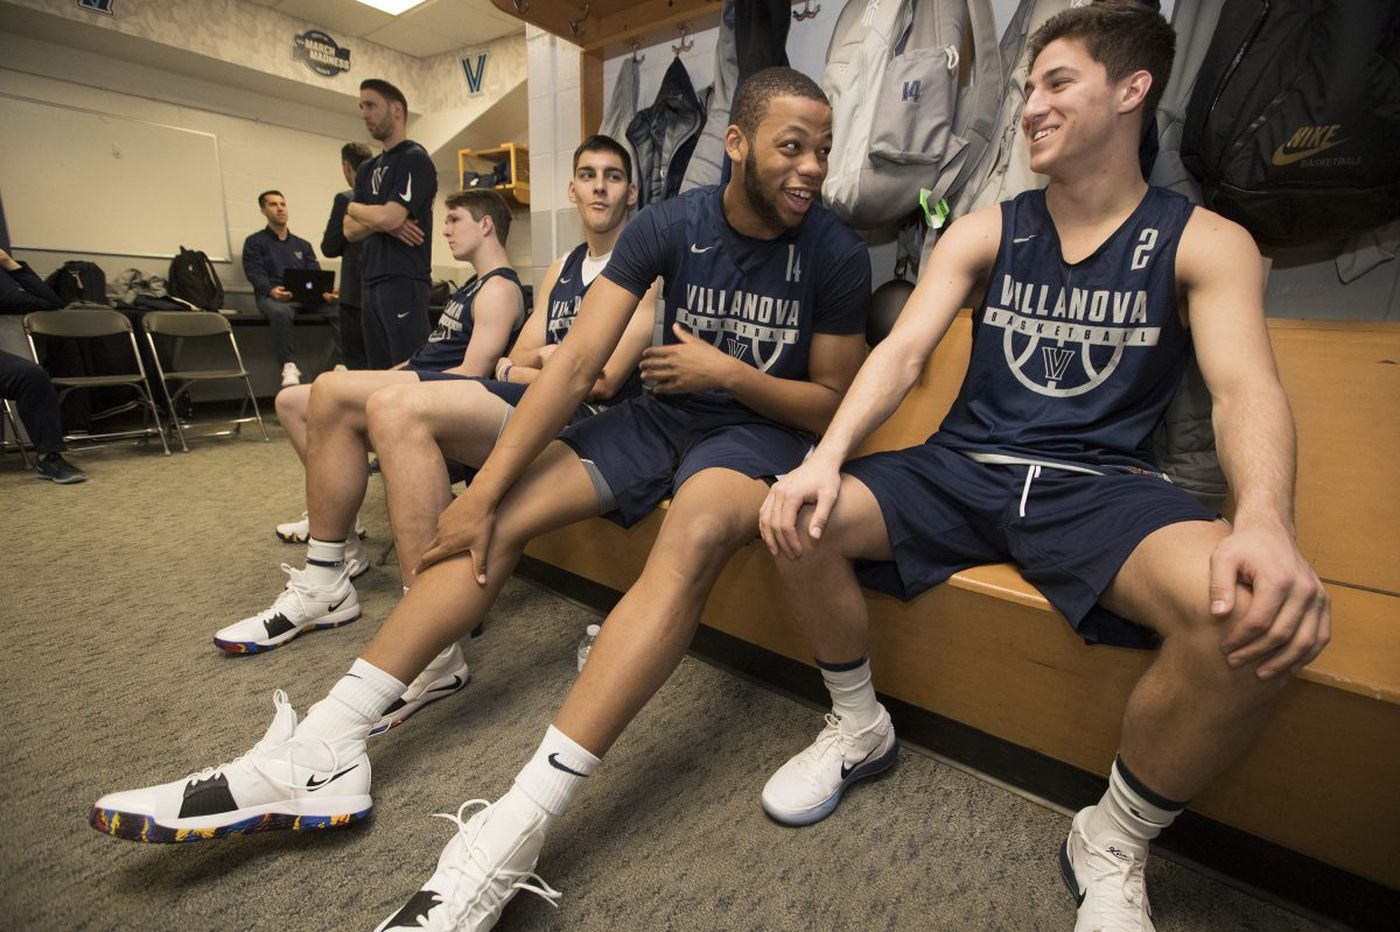 Villanova snow-delayed trip got off to a rough start, but team arrived in Boston for March Madness safely